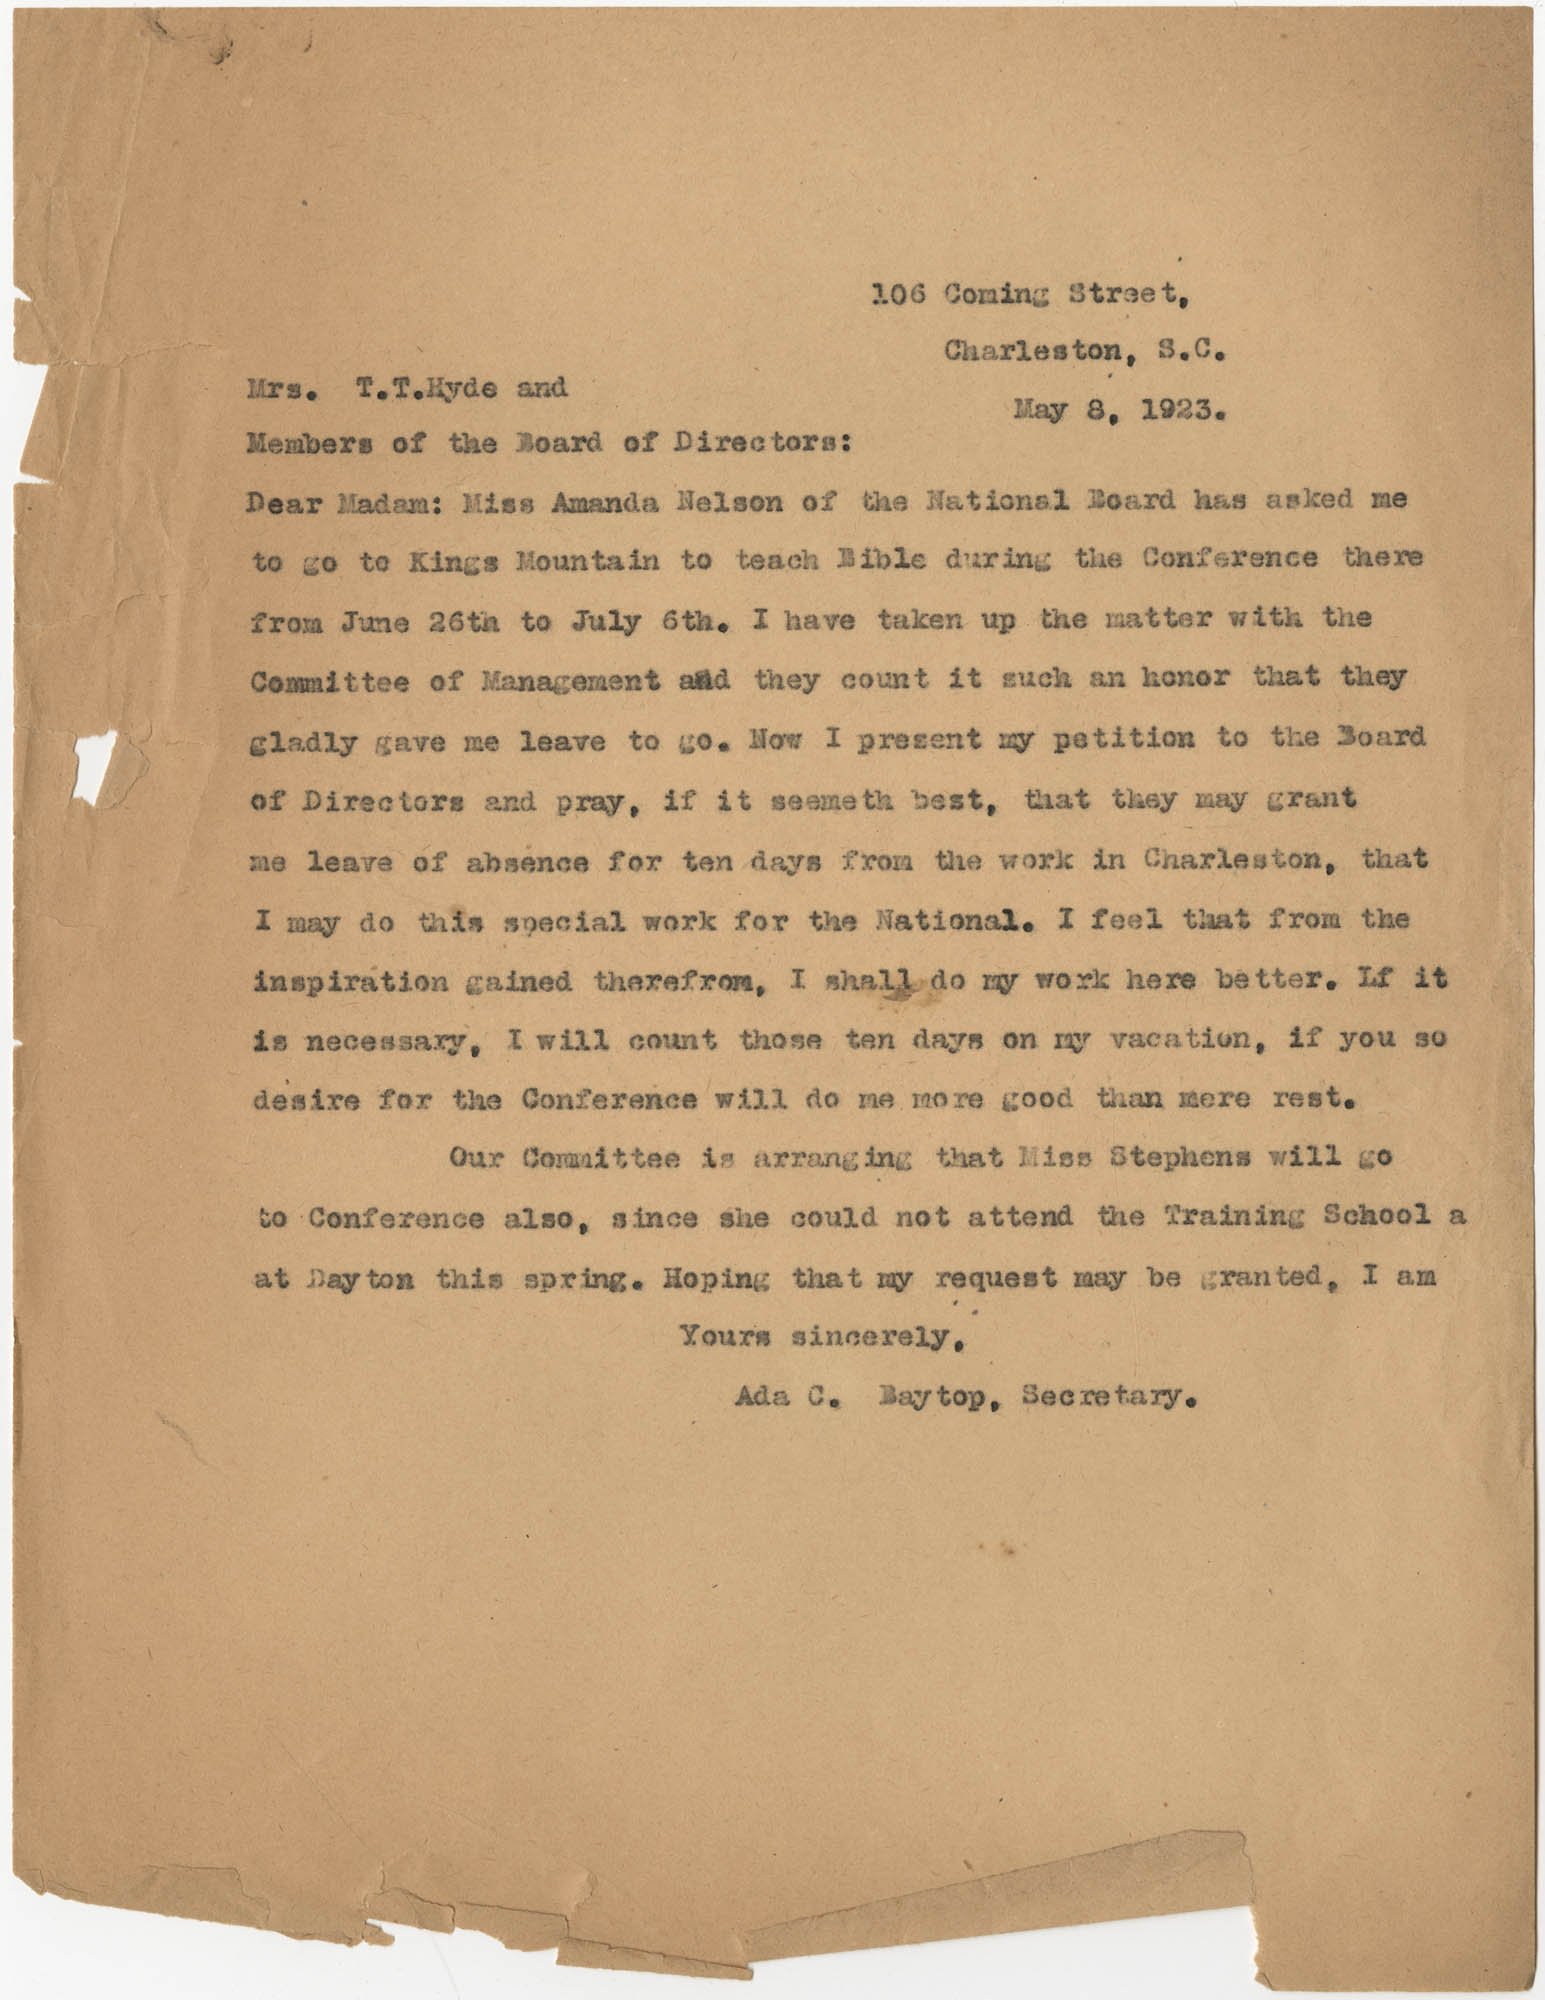 Letter from Ada C. Baytop to T. T. Hyde, May 8, 1923